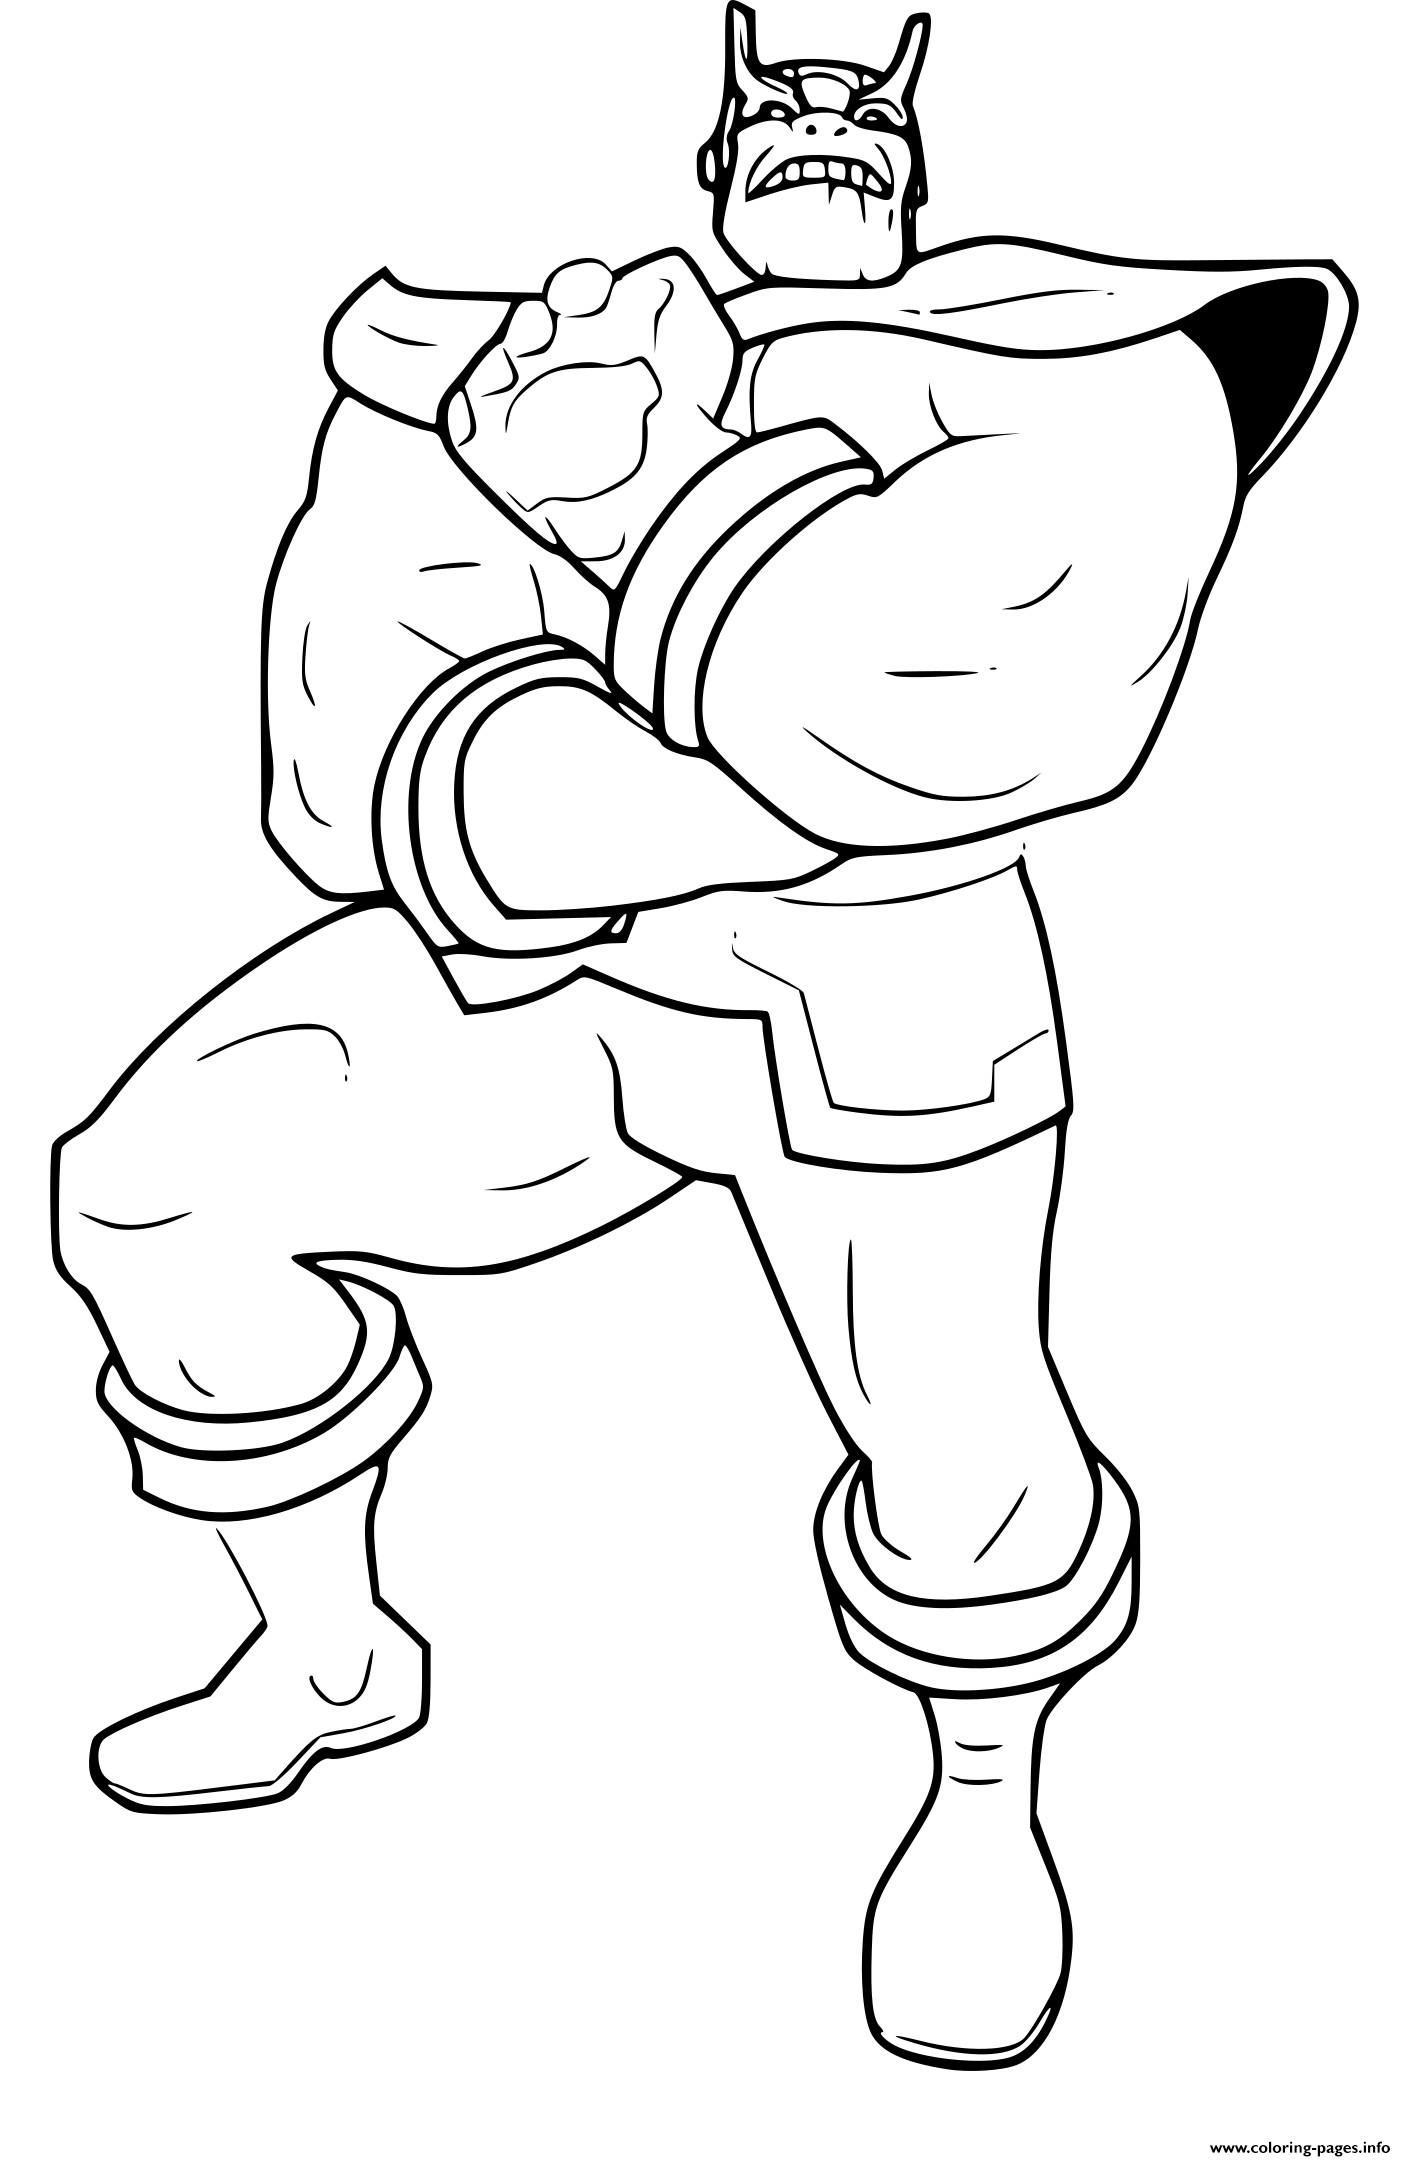 avengers endgame thanos coloring pages captain marvel avengers endgame coloring pages printable coloring thanos avengers endgame pages